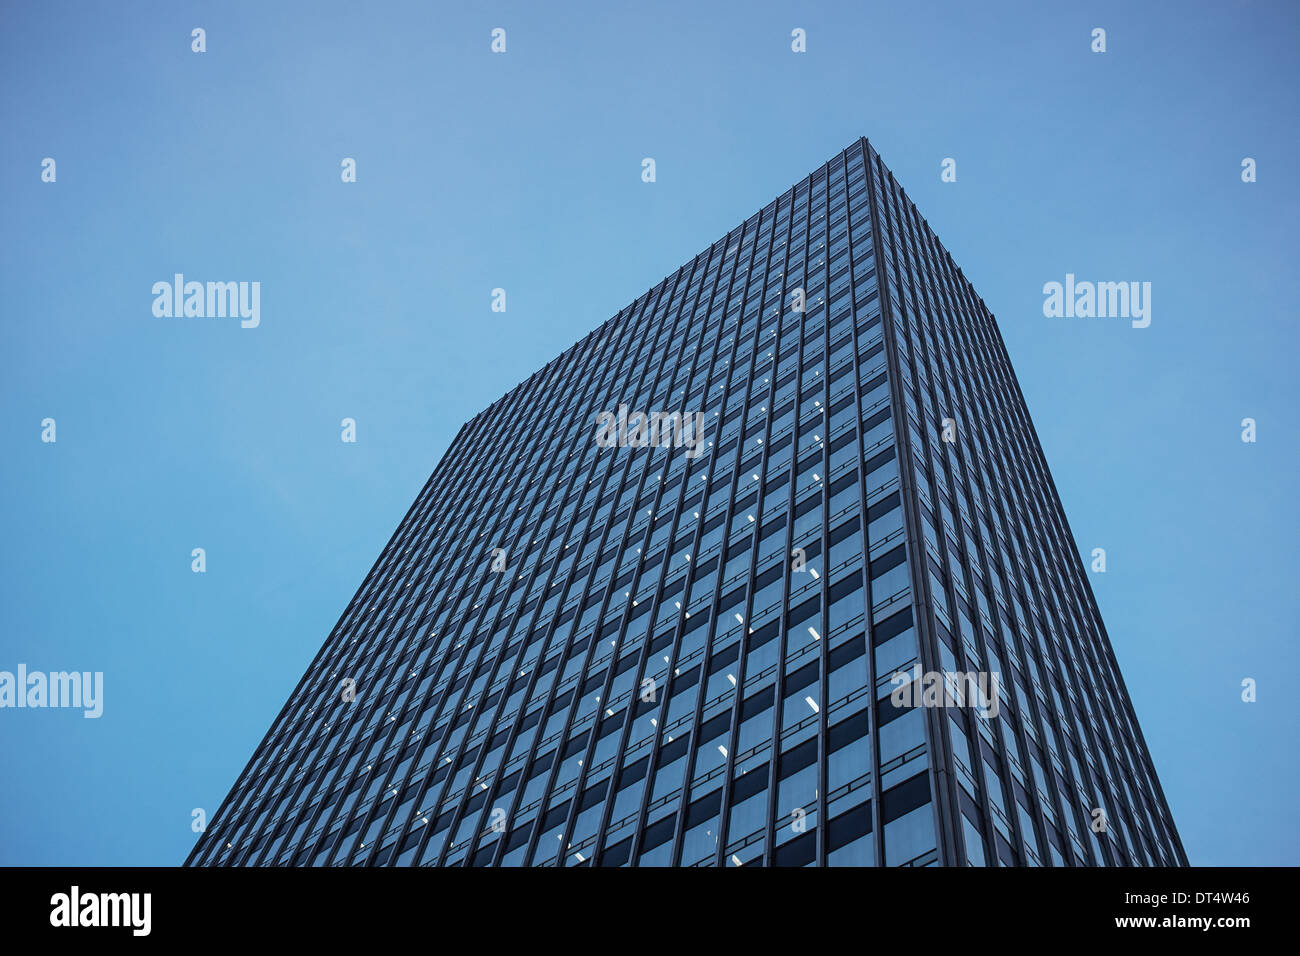 The CIS tower in Manchester city centre UK - Stock Image